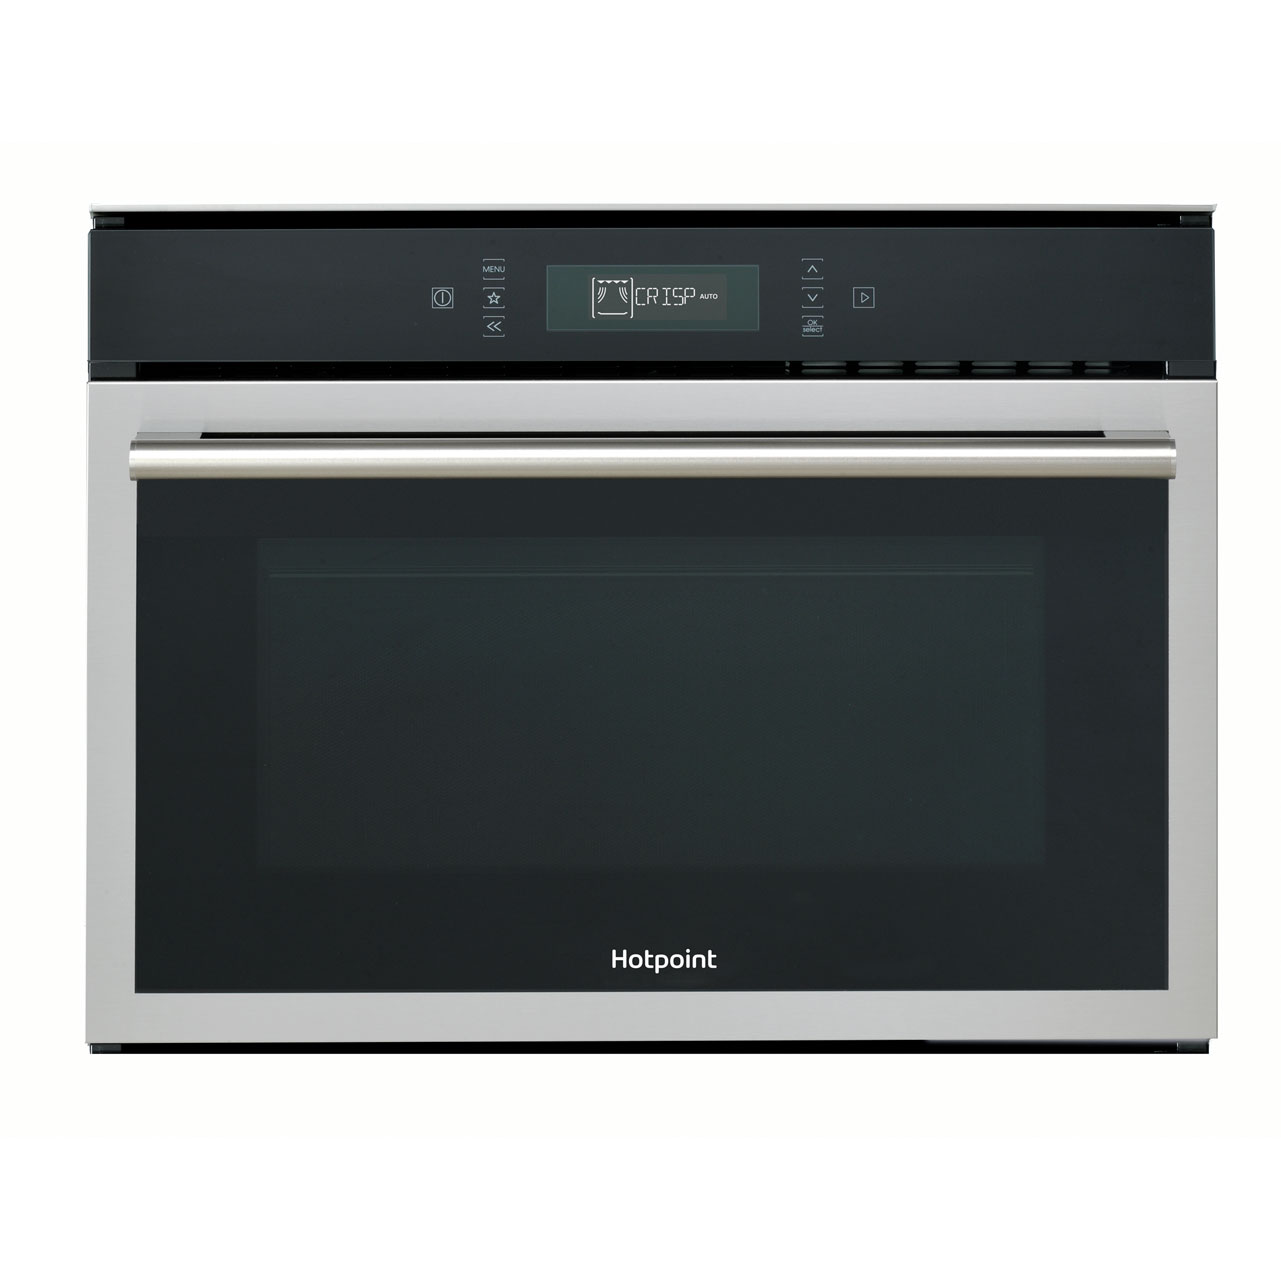 Hotpoint Class 6 MP676IXH Integrated Microwave Oven in Stainless Steel